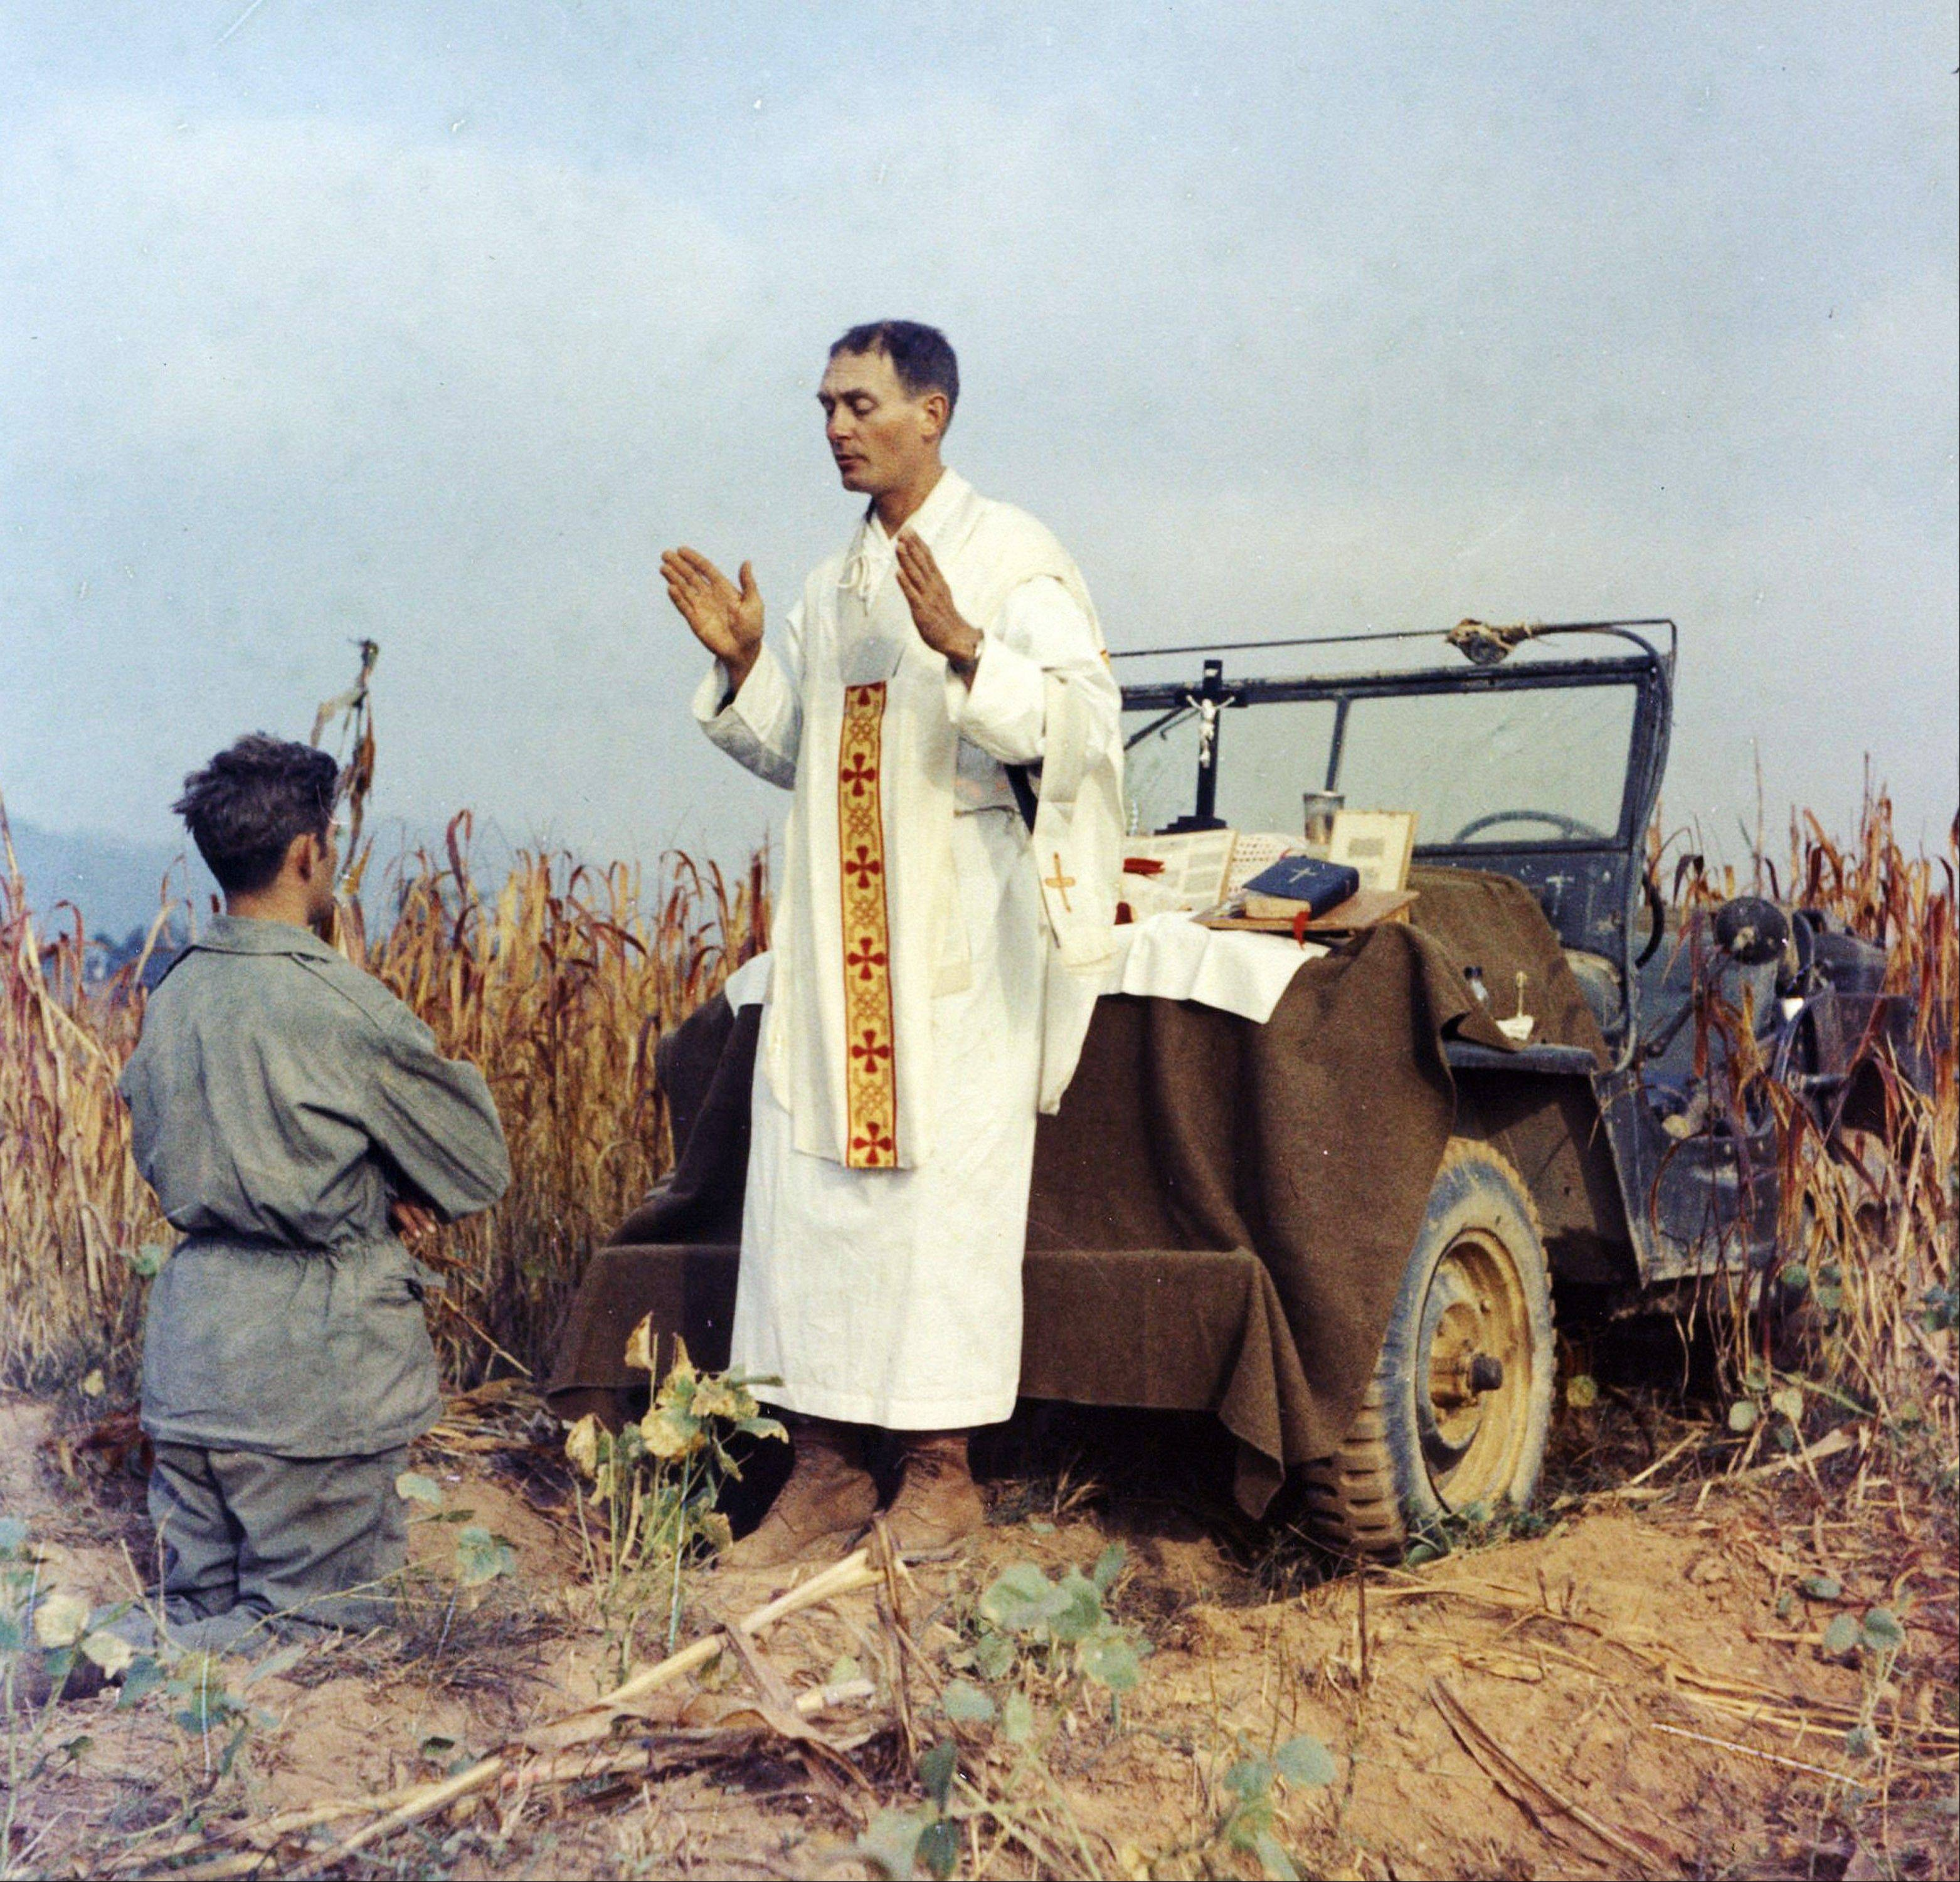 Father Emil Kapaun celebrates Mass using the hood of his jeep as an altar, as his assistant, Patrick J. Schuler, kneels in prayer in Korea on Oct. 7, 1950, less than a month before Kapaun was taken prisoner. Kapaun died in a prisoner of war camp on May 23, 1951. On April 11, 2013, President Barack Obama will award the legendary chaplain, credited with saving hundreds of soldiers during the Korean War, the Medal of Honor posthumously.